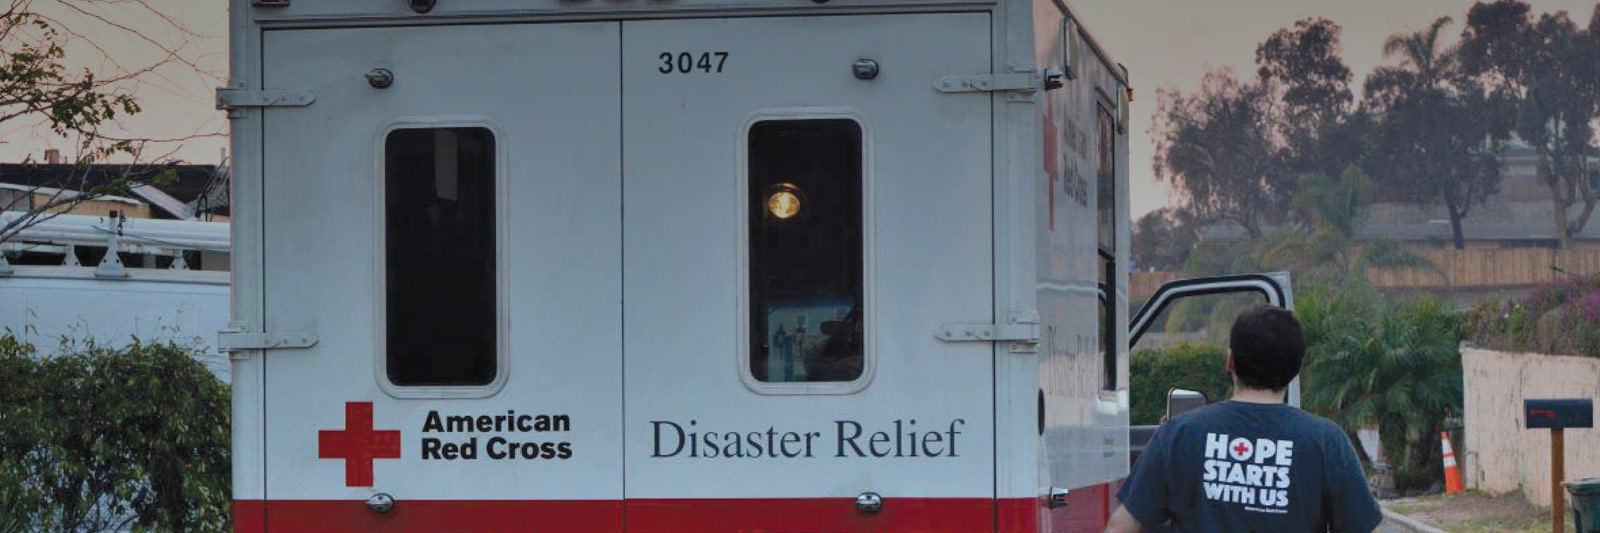 american-red-cross-track-1600x533